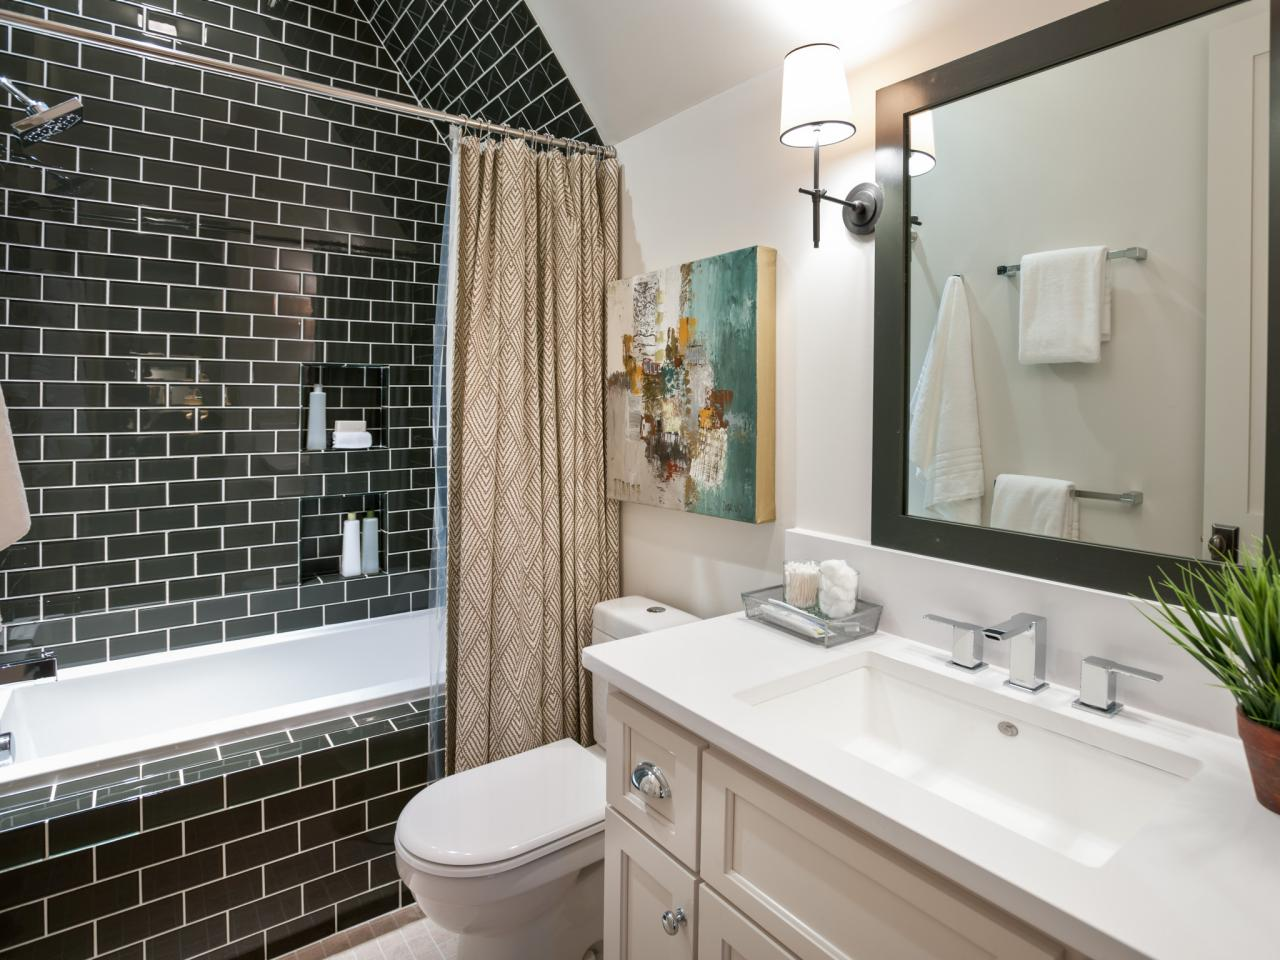 Kid 39 s bathroom from hgtv smart home 2014 hgtv smart home for Bathroom designs hgtv